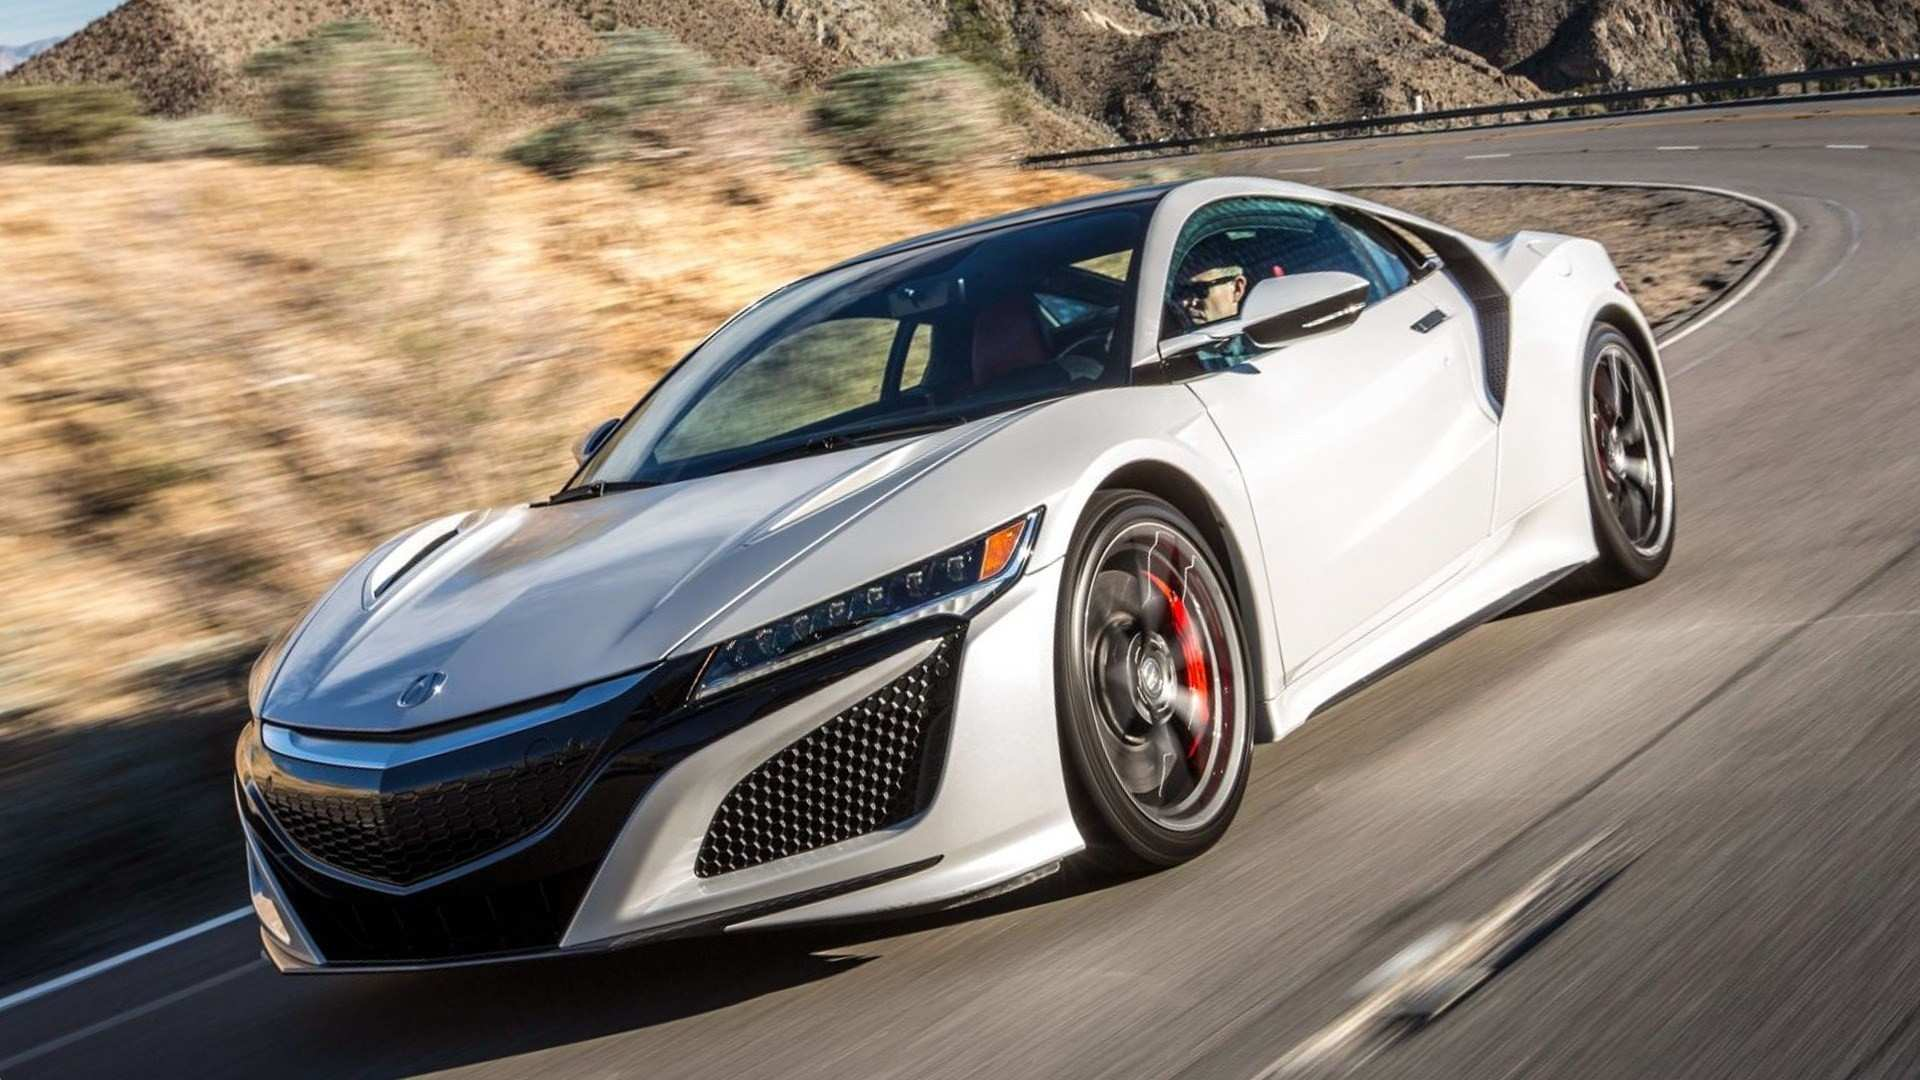 68 The New 2019 Acura Nsx Msrp Picture Release Date And Review Prices with New 2019 Acura Nsx Msrp Picture Release Date And Review